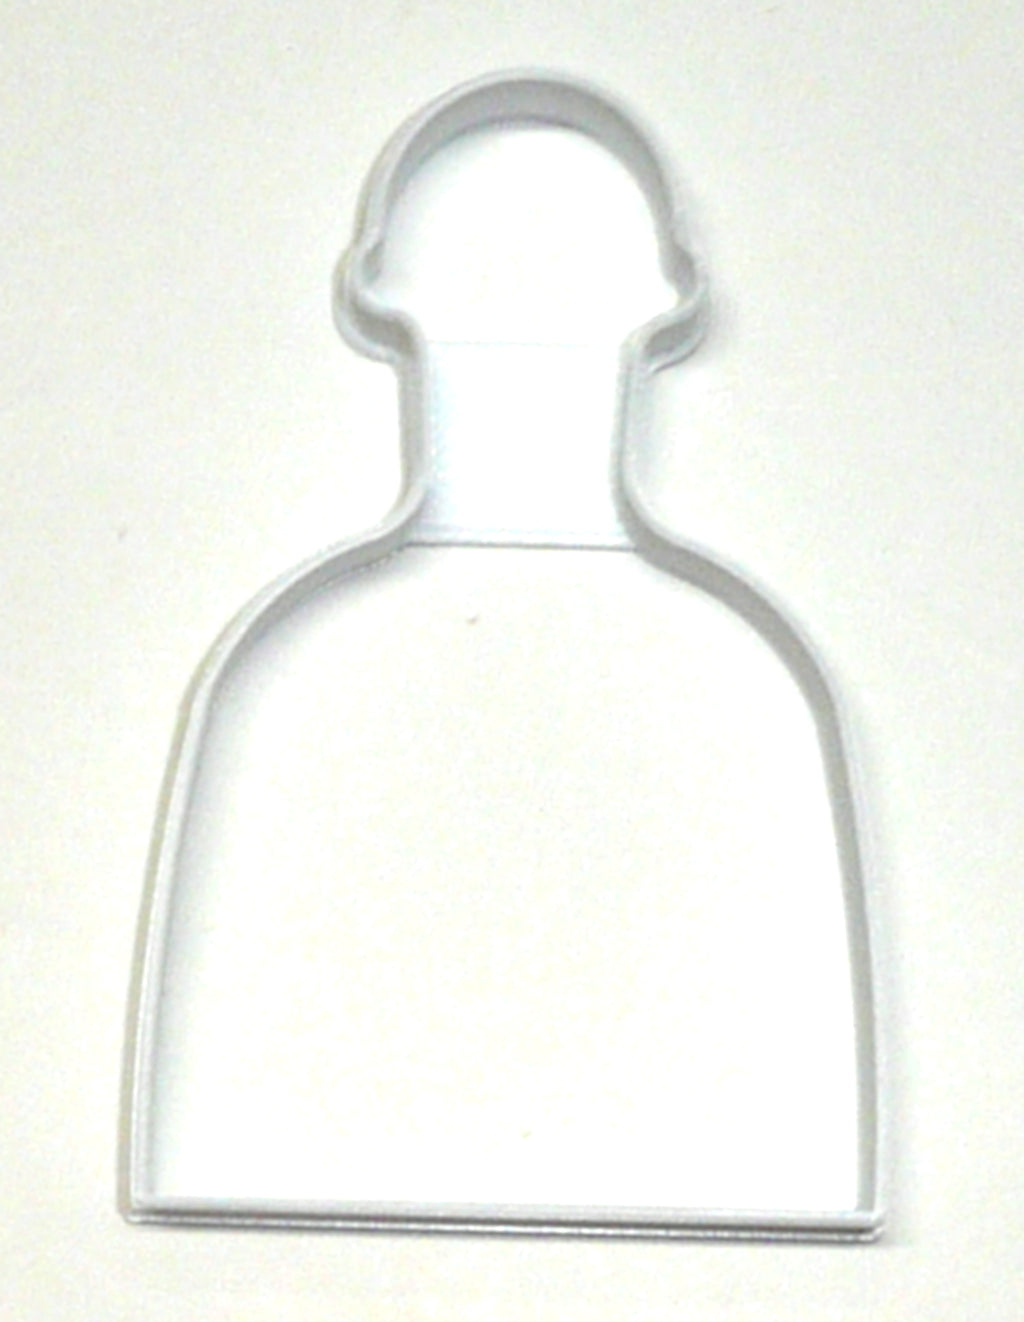 "6x Tequila Bottle Alcohol Fondant Cutter Cupcake Topper Size 1.75"" USA FD2862"